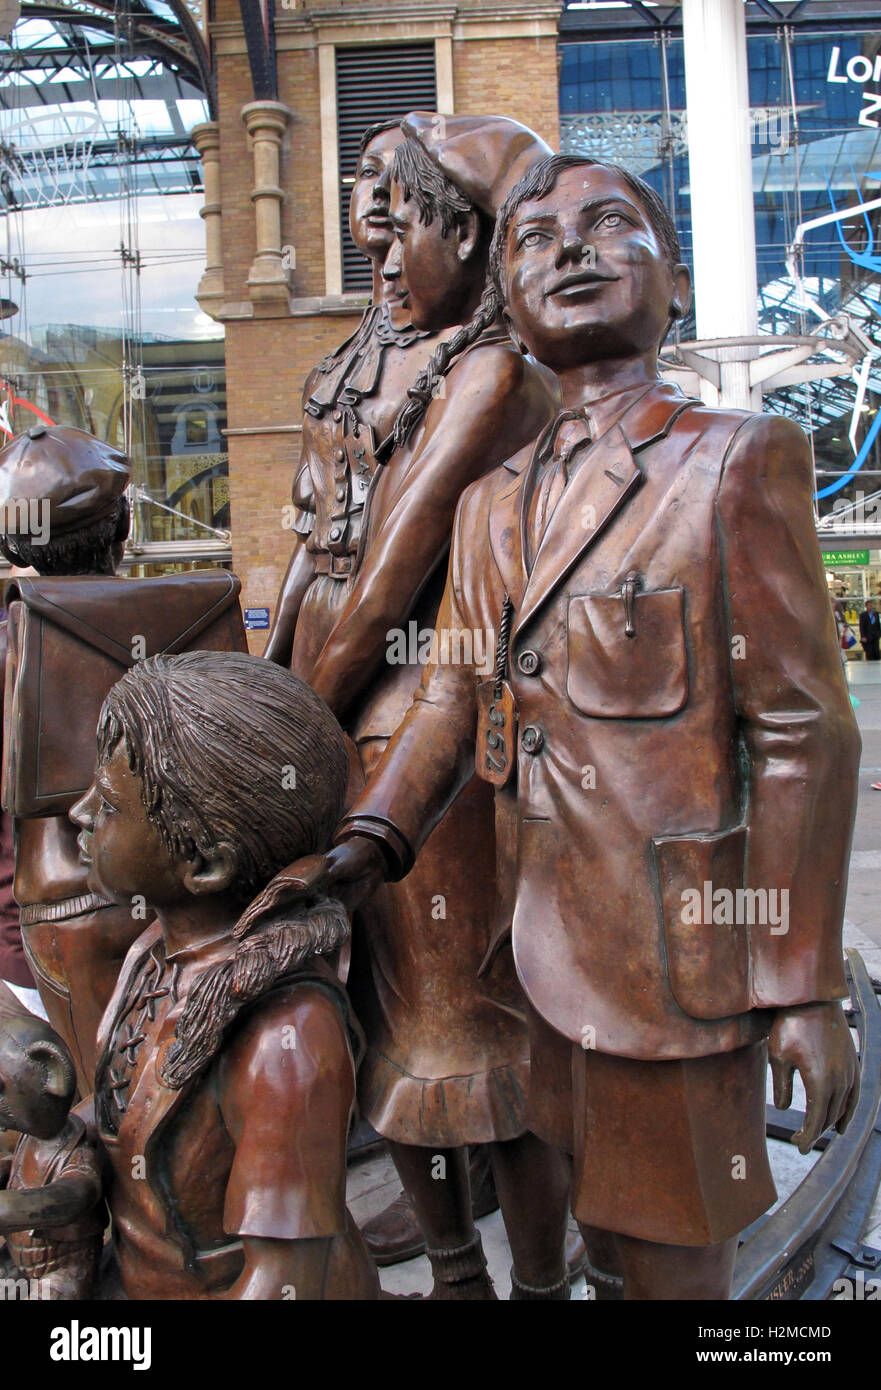 Kindertransport statues, Liverpool St station,London,England,UK Stock Photo